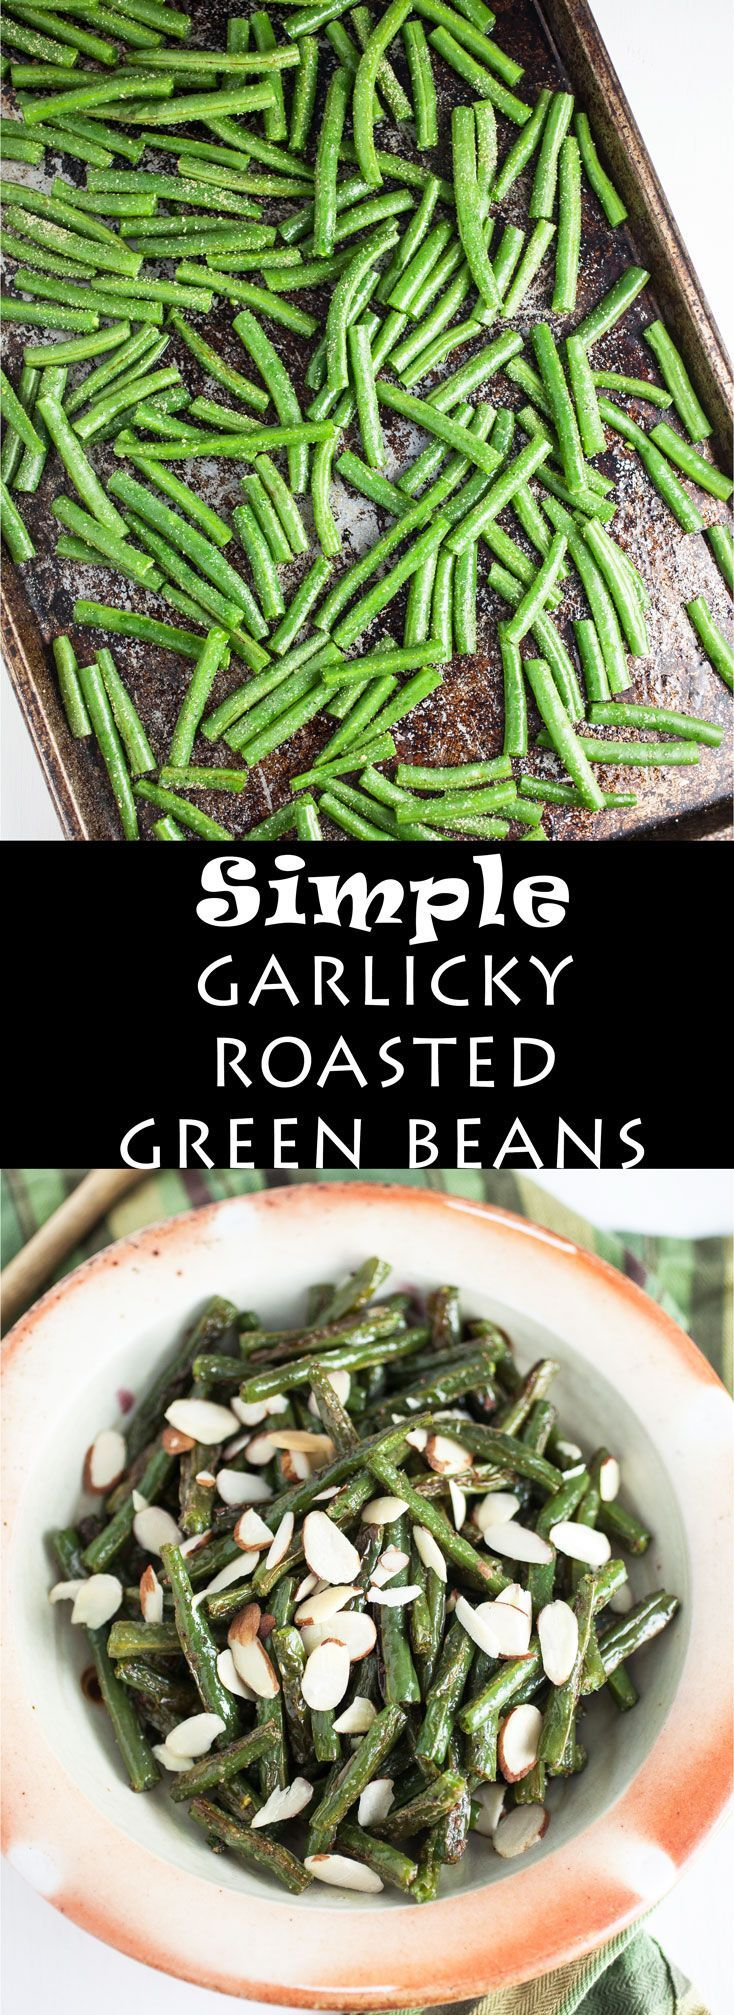 This roasted garlicky green beans recipe is so easy! It's the perfect 20-minute weeknight side dish. These roasted green beans are simple, healthy, and loaded with garlic flavor.